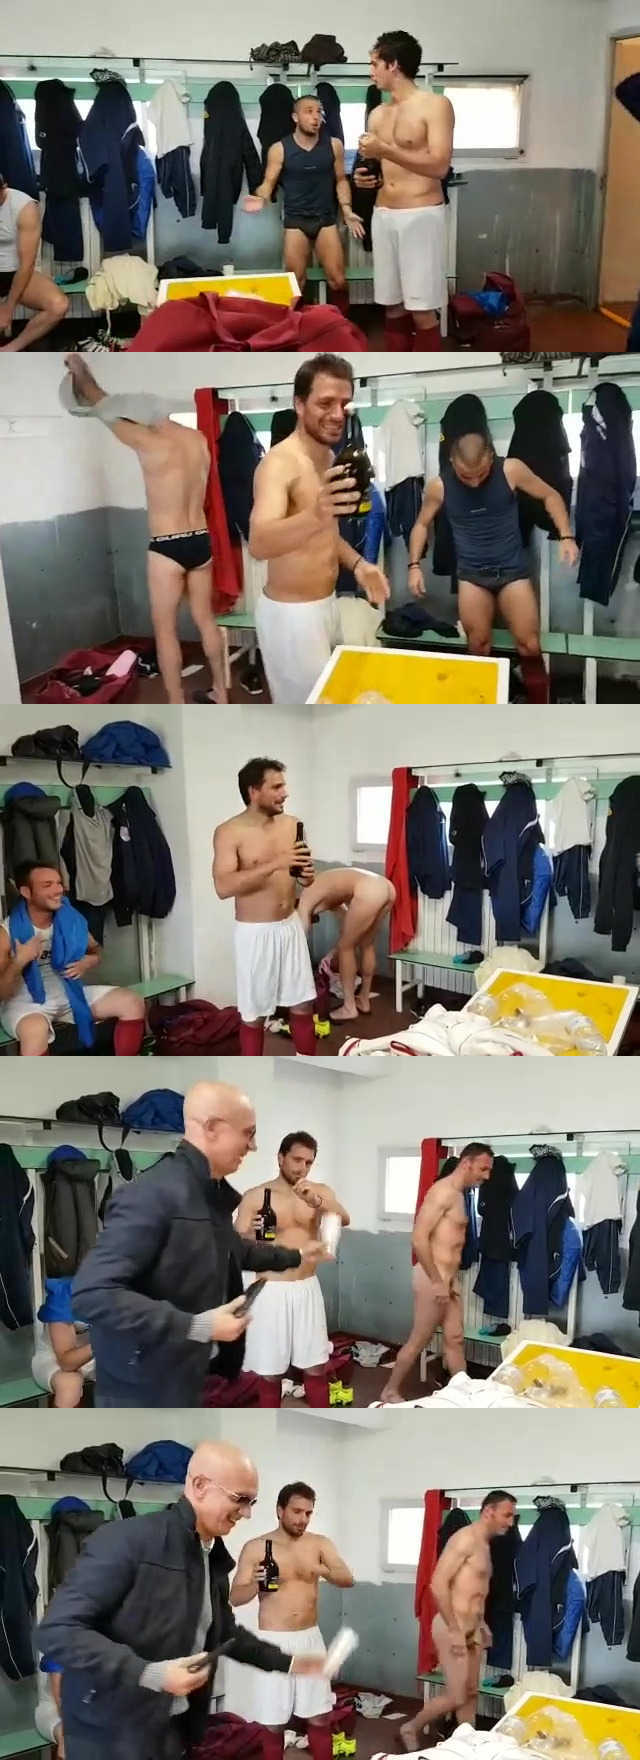 naked player in a dressingroom